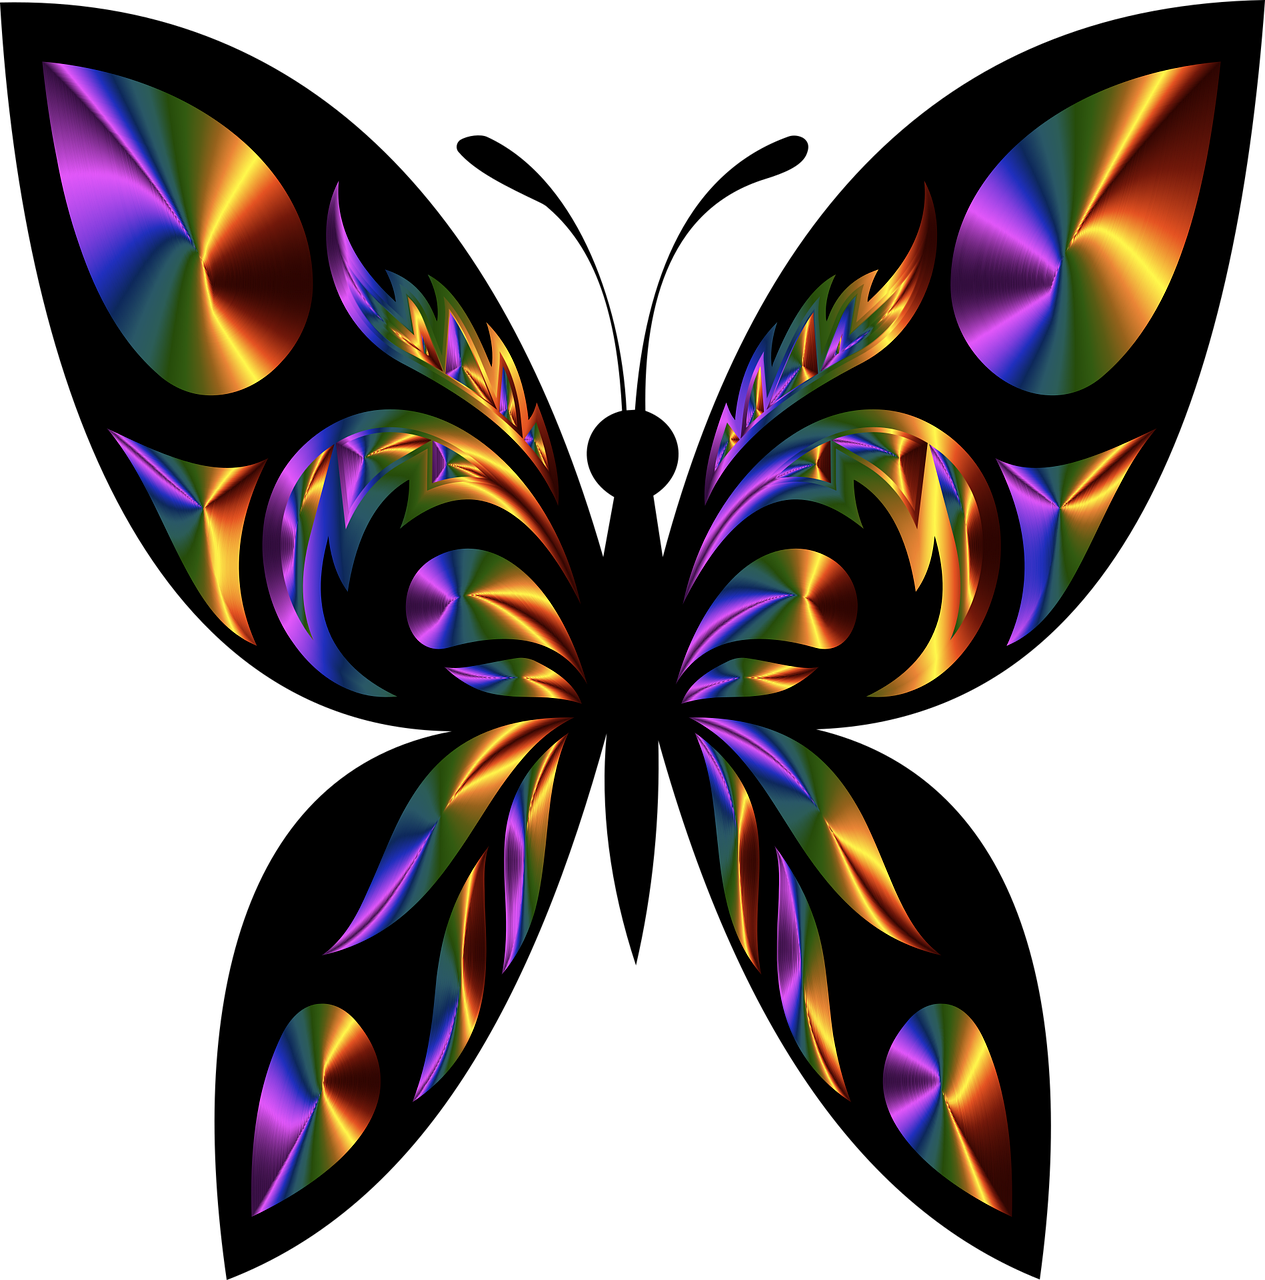 butterfly icon free vector graphic on pixabay https creativecommons org licenses publicdomain